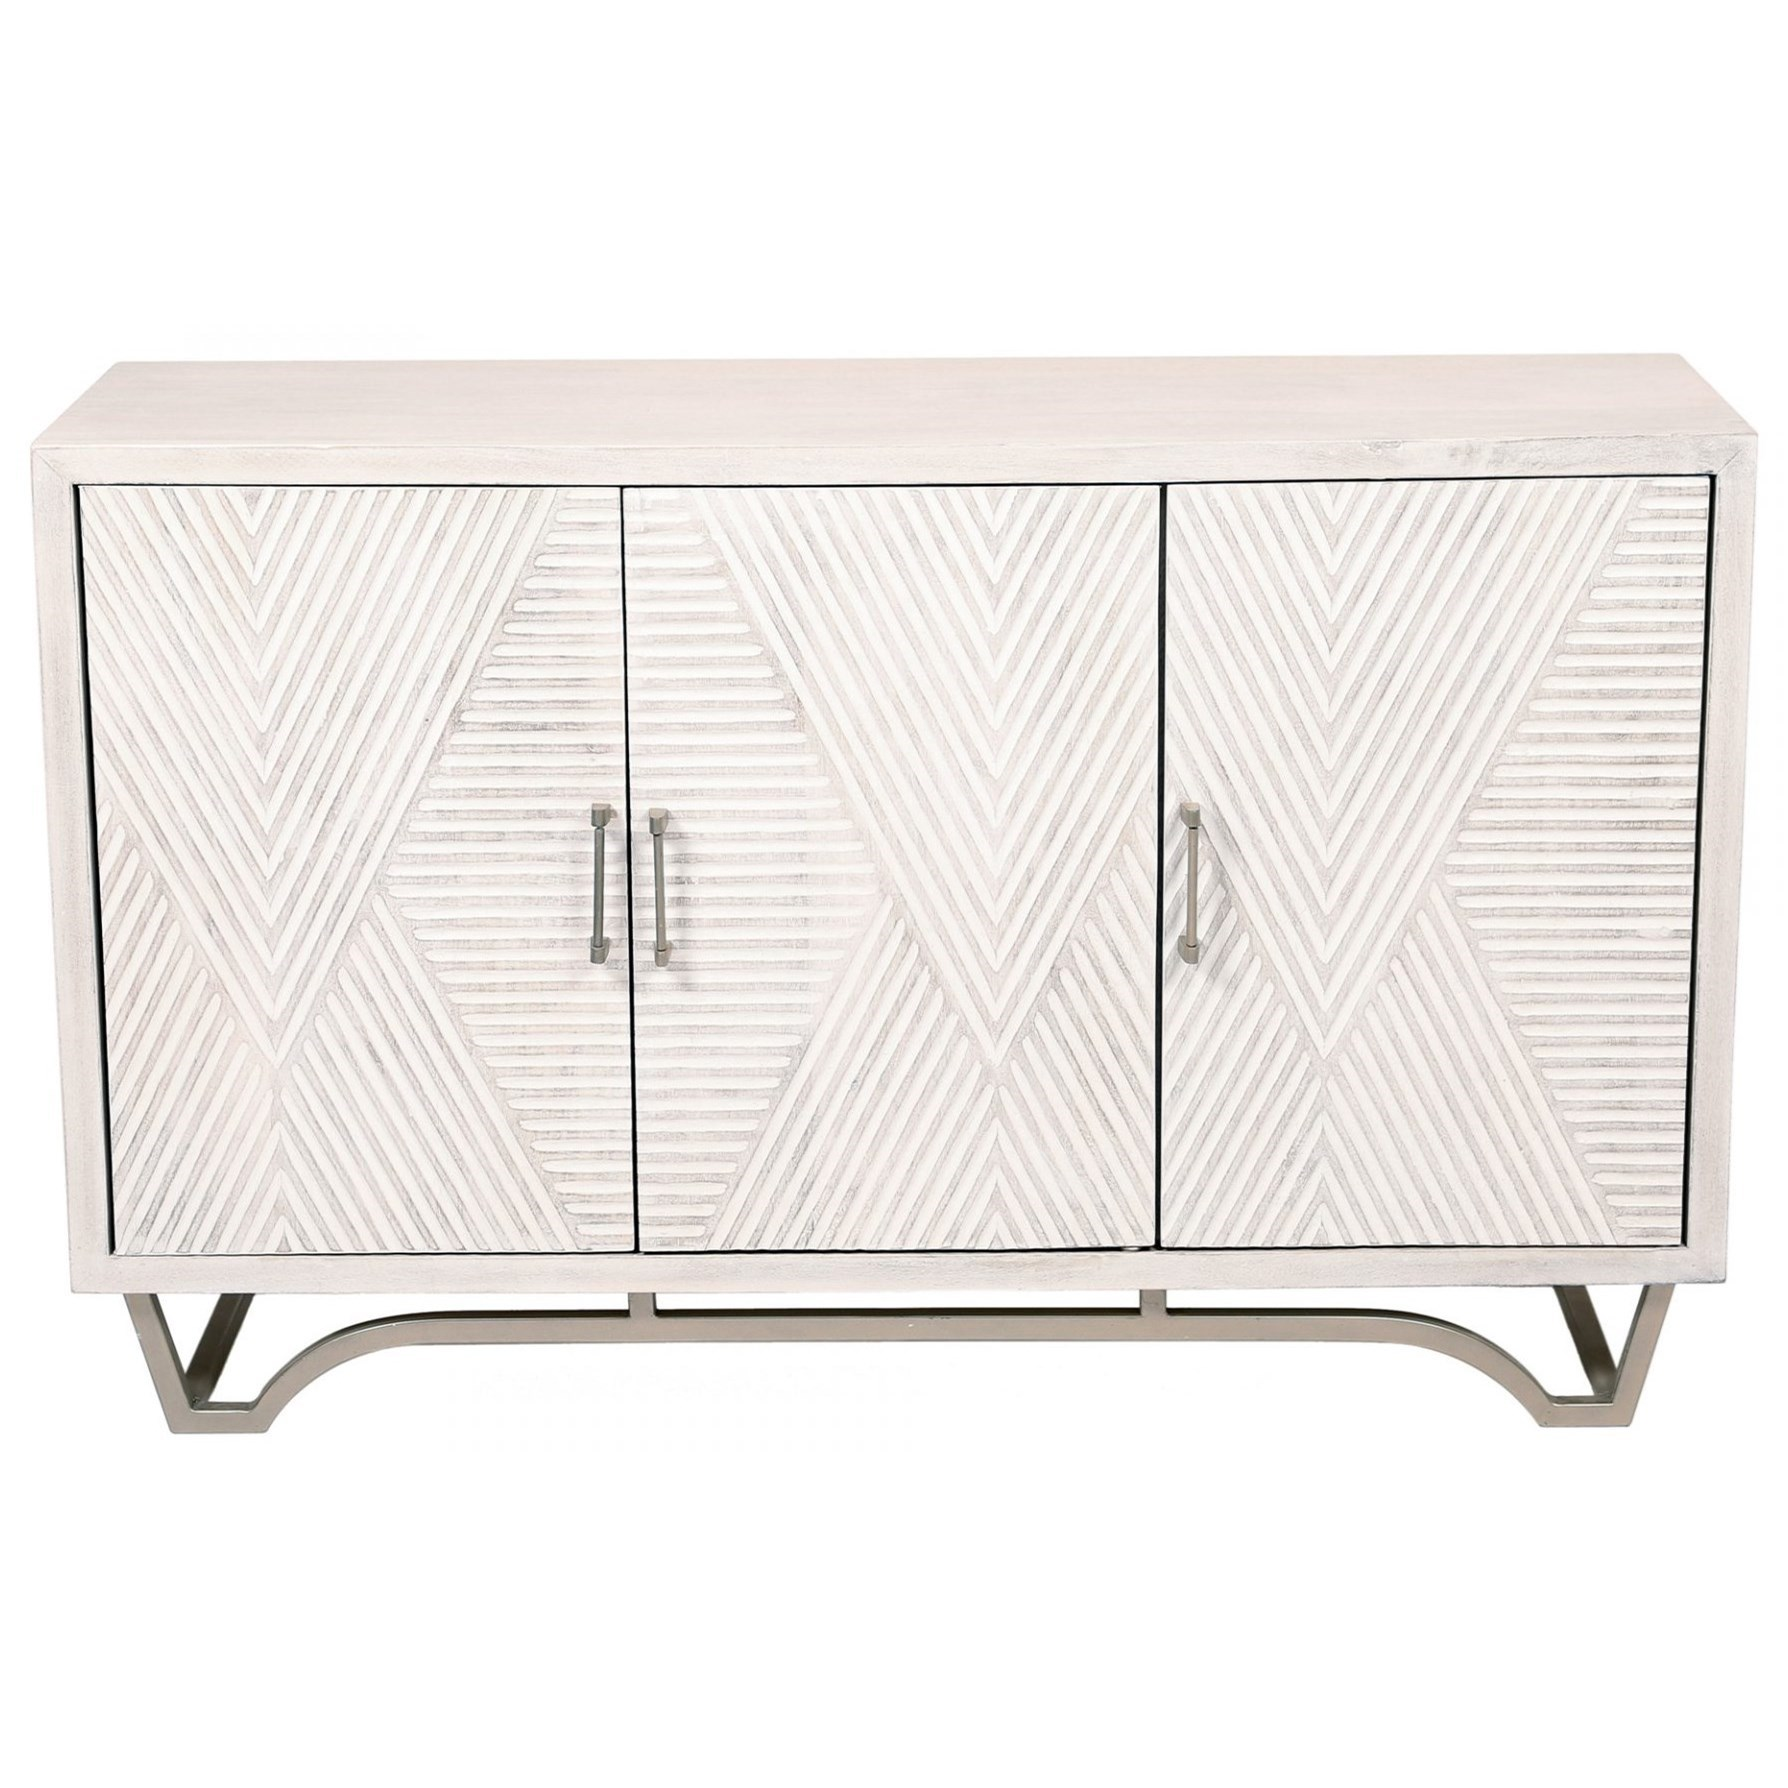 Brice Sideboard by Moe's Home Collection at Stoney Creek Furniture